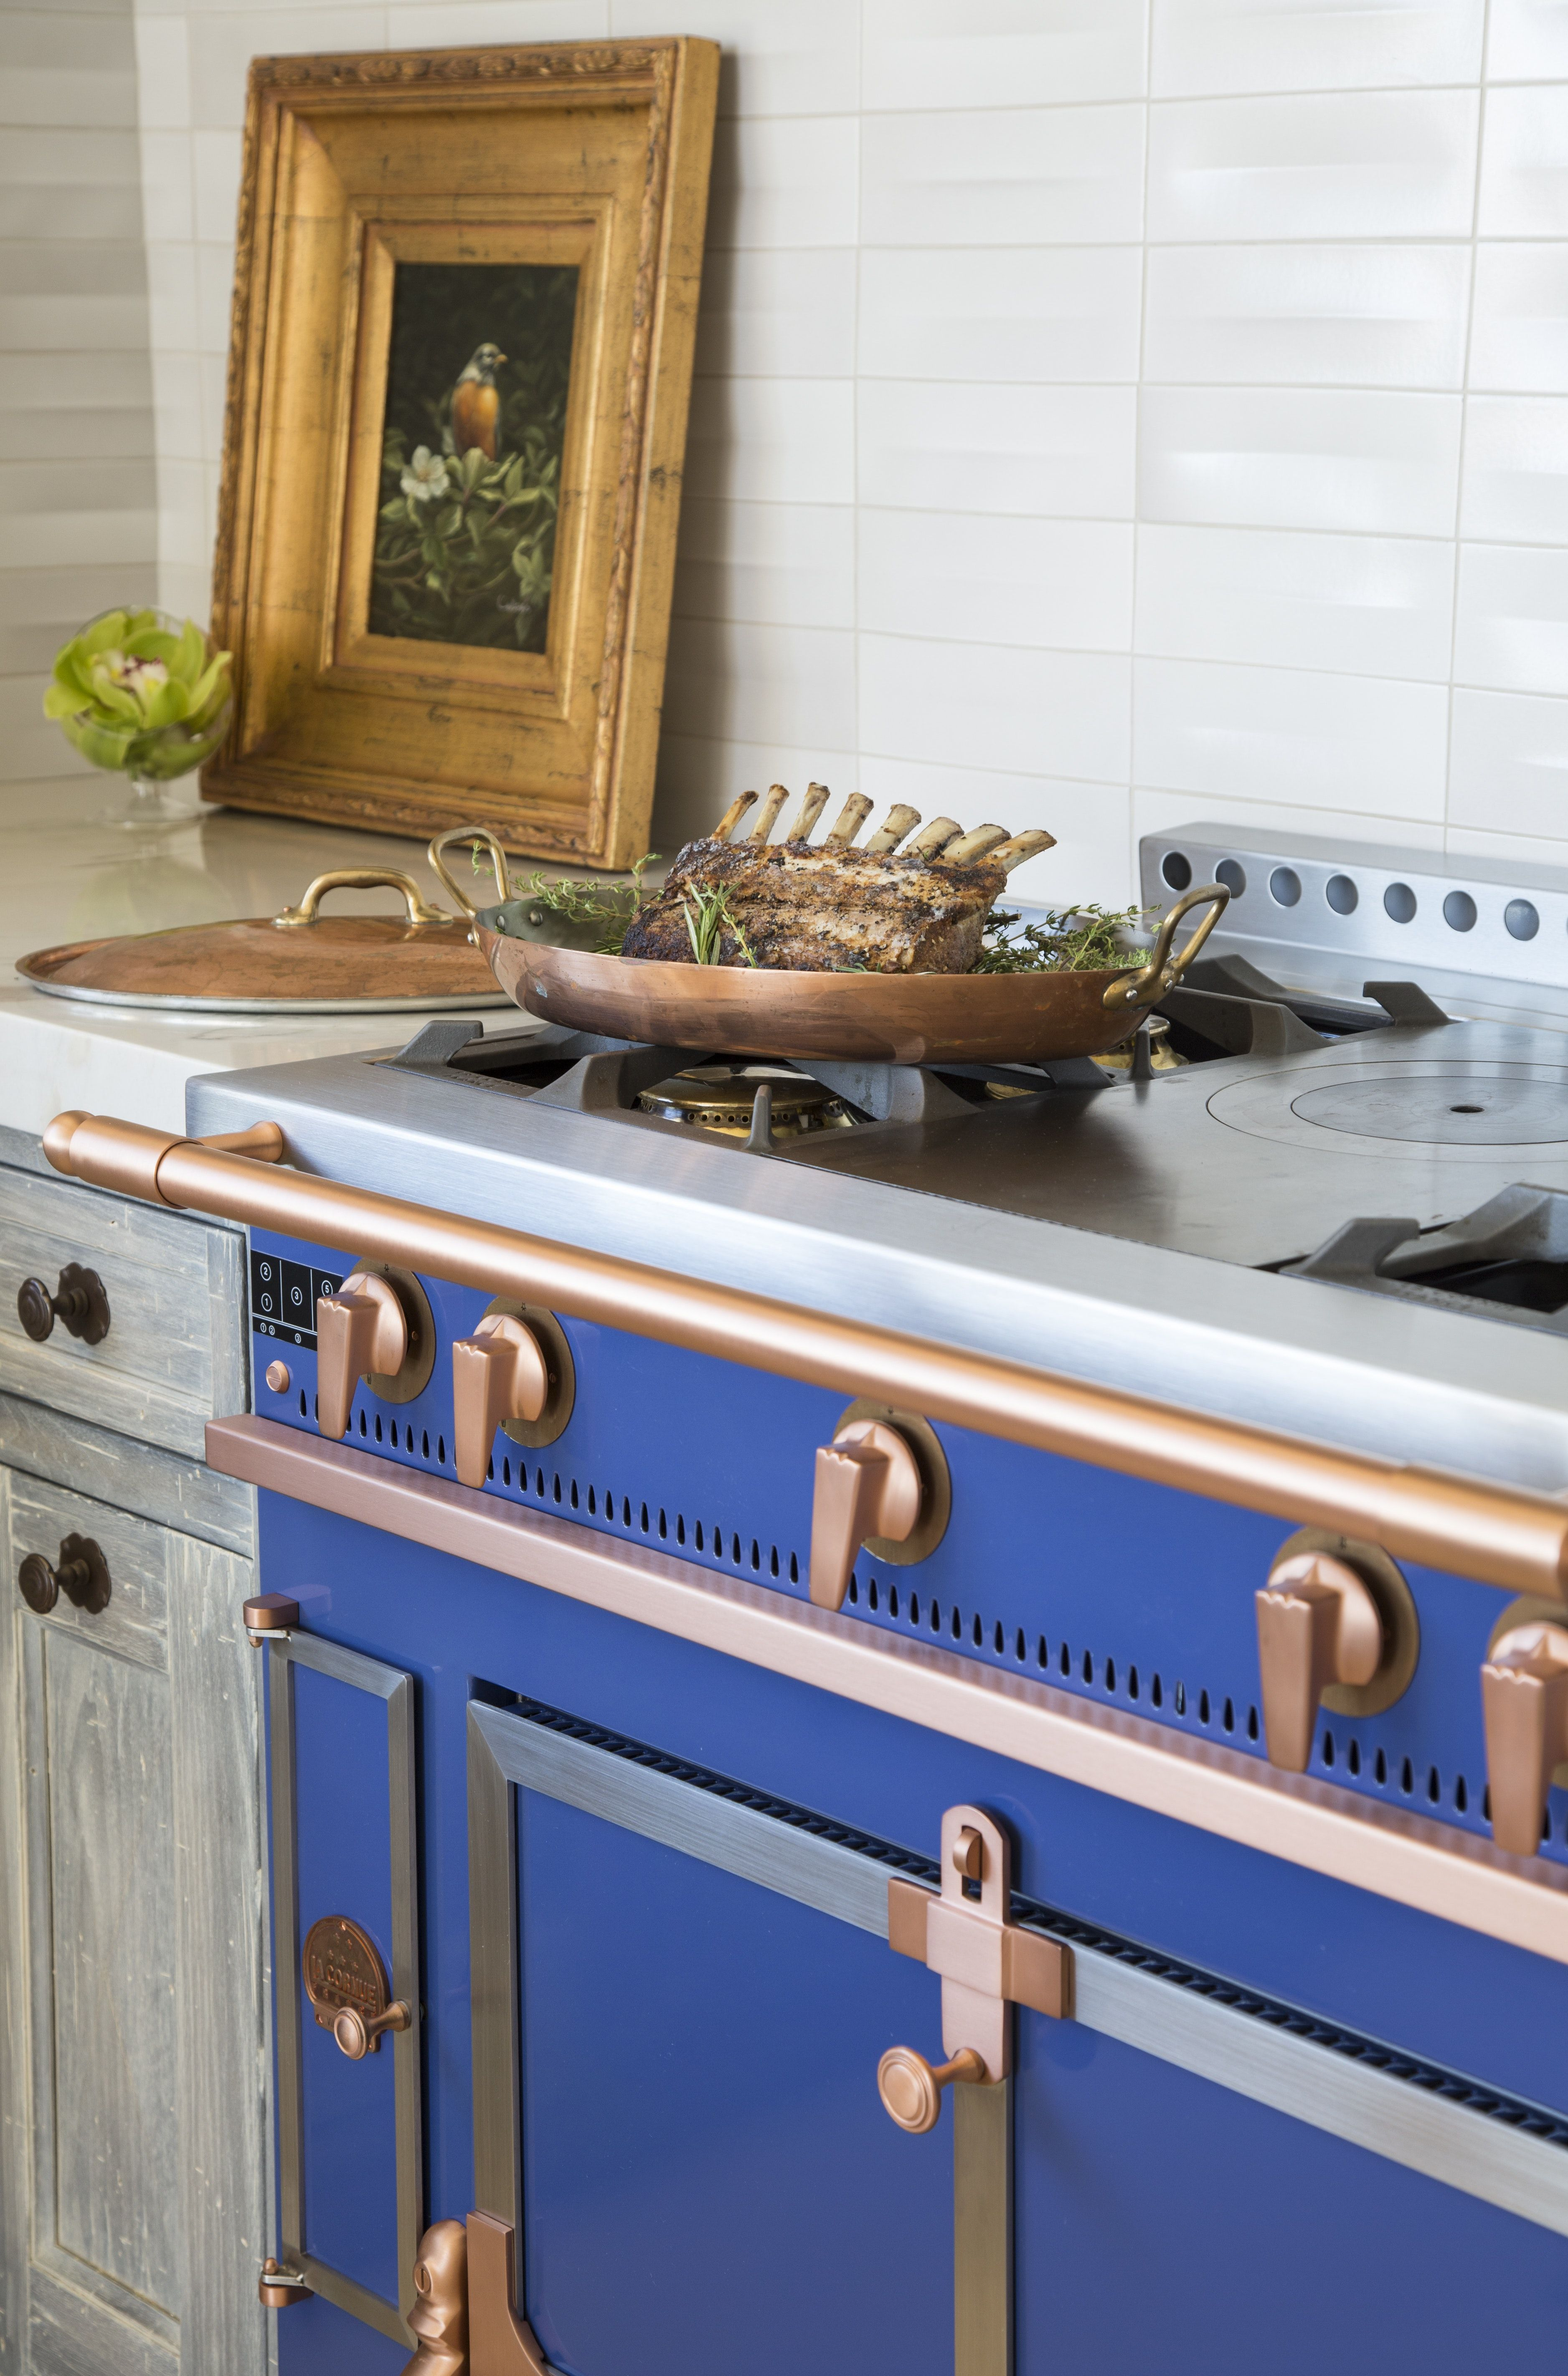 Rolling Hills, California kitchen with Blue La Cornue with